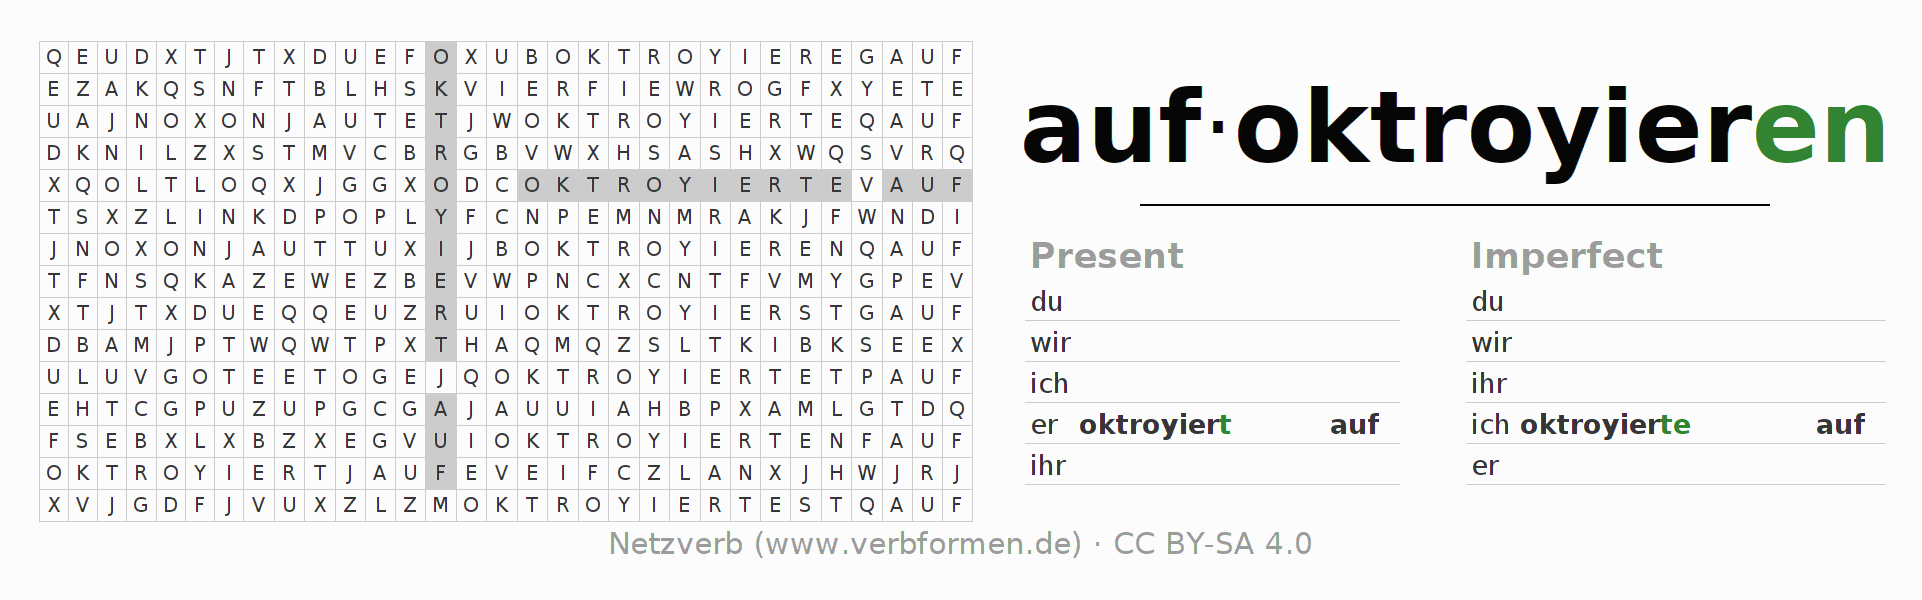 Word search puzzle for the conjugation of the verb aufoktroyieren